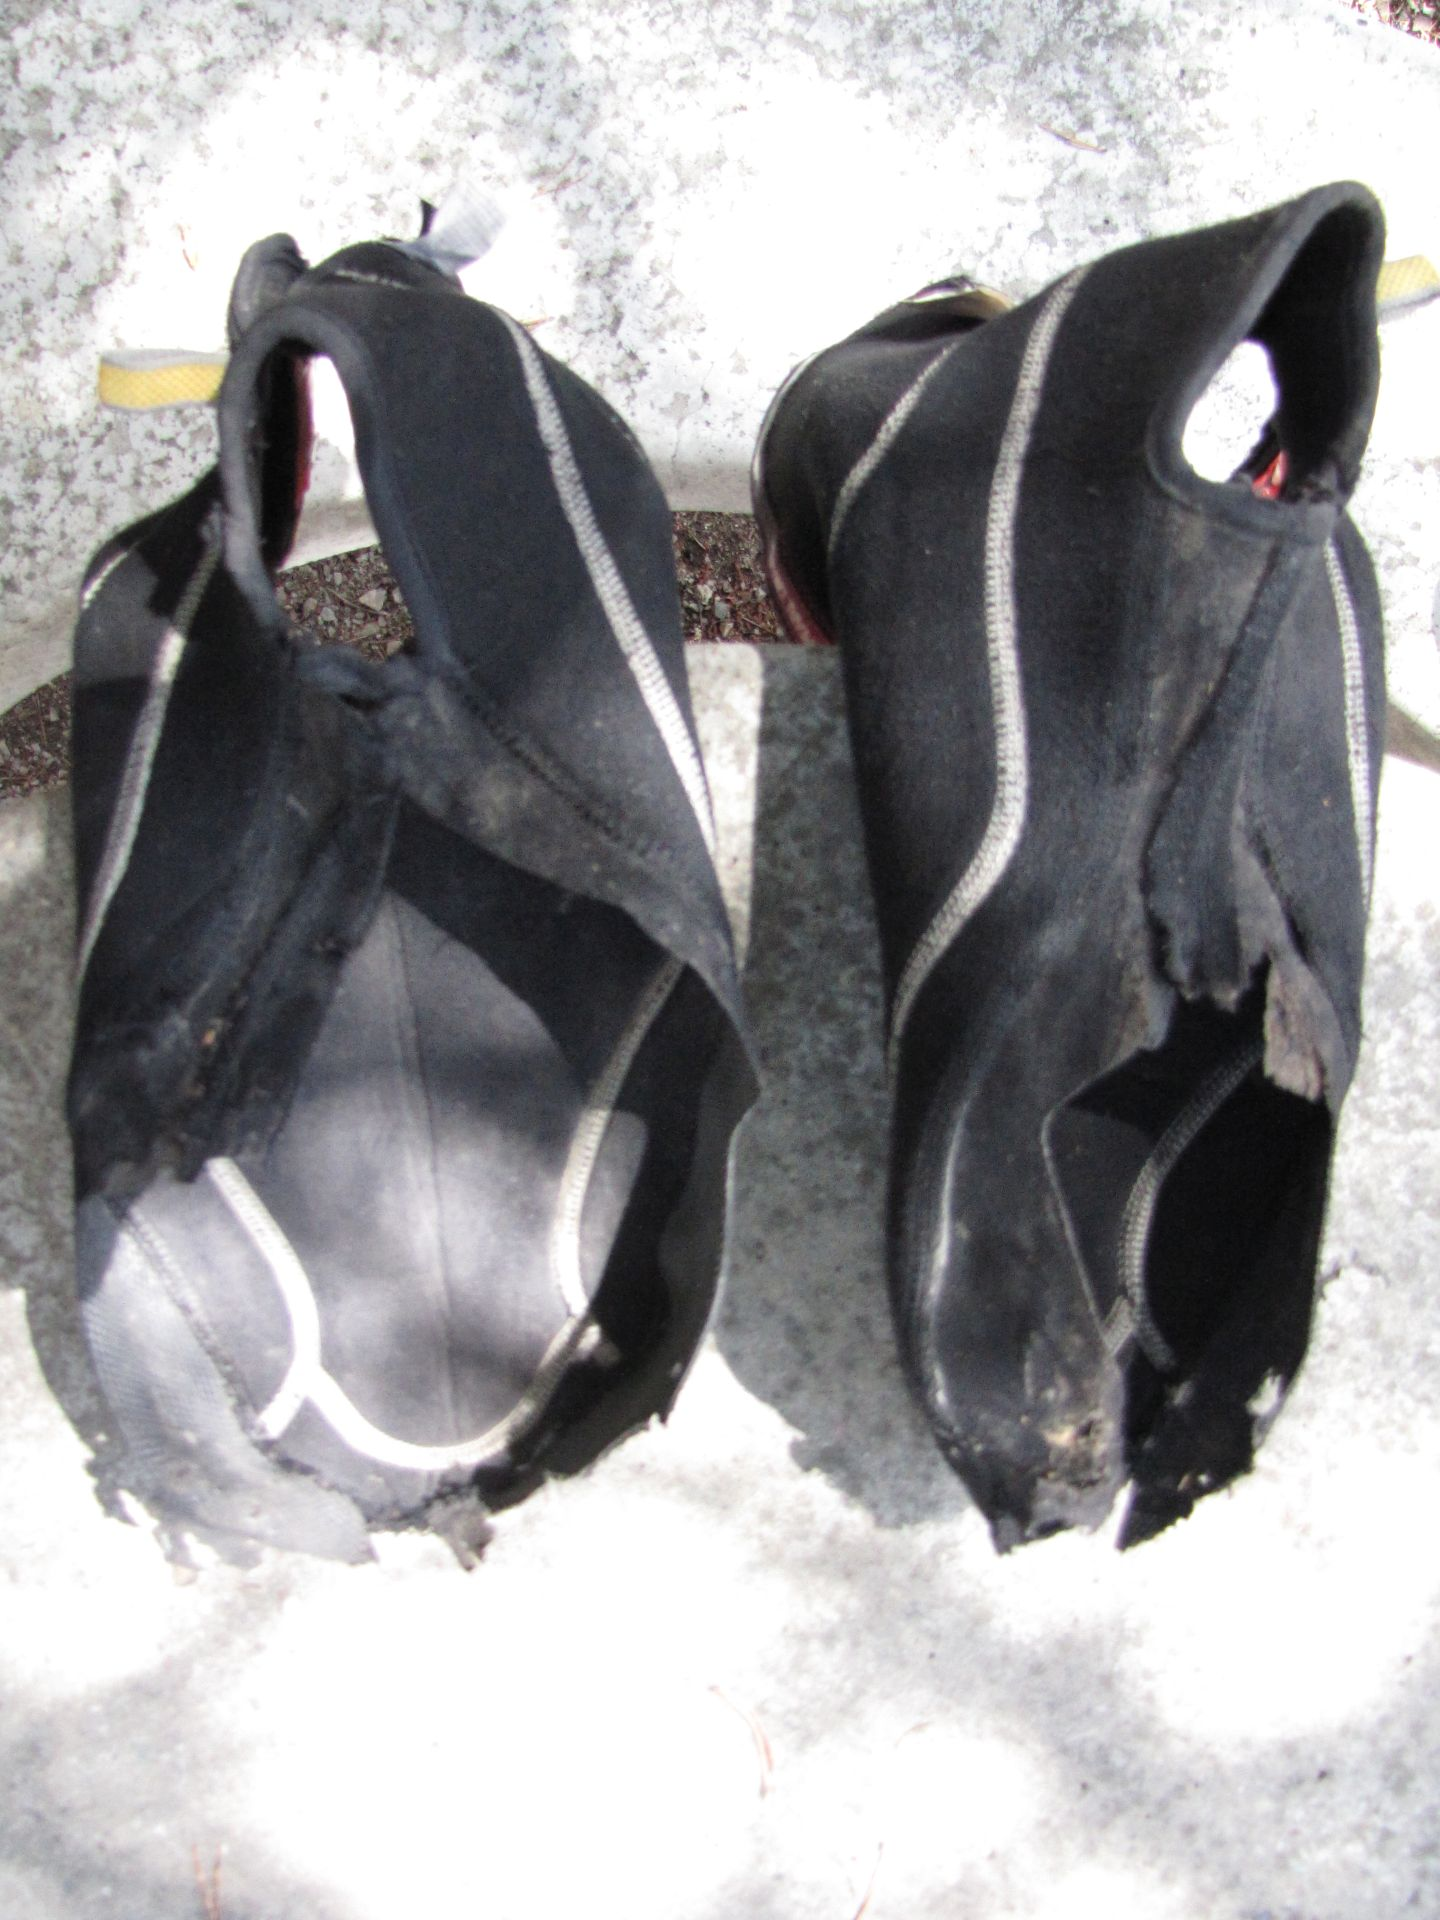 Neoprene Overshoes last used in Northern Alaska - these babies have had it!  New ones purchsed soon after